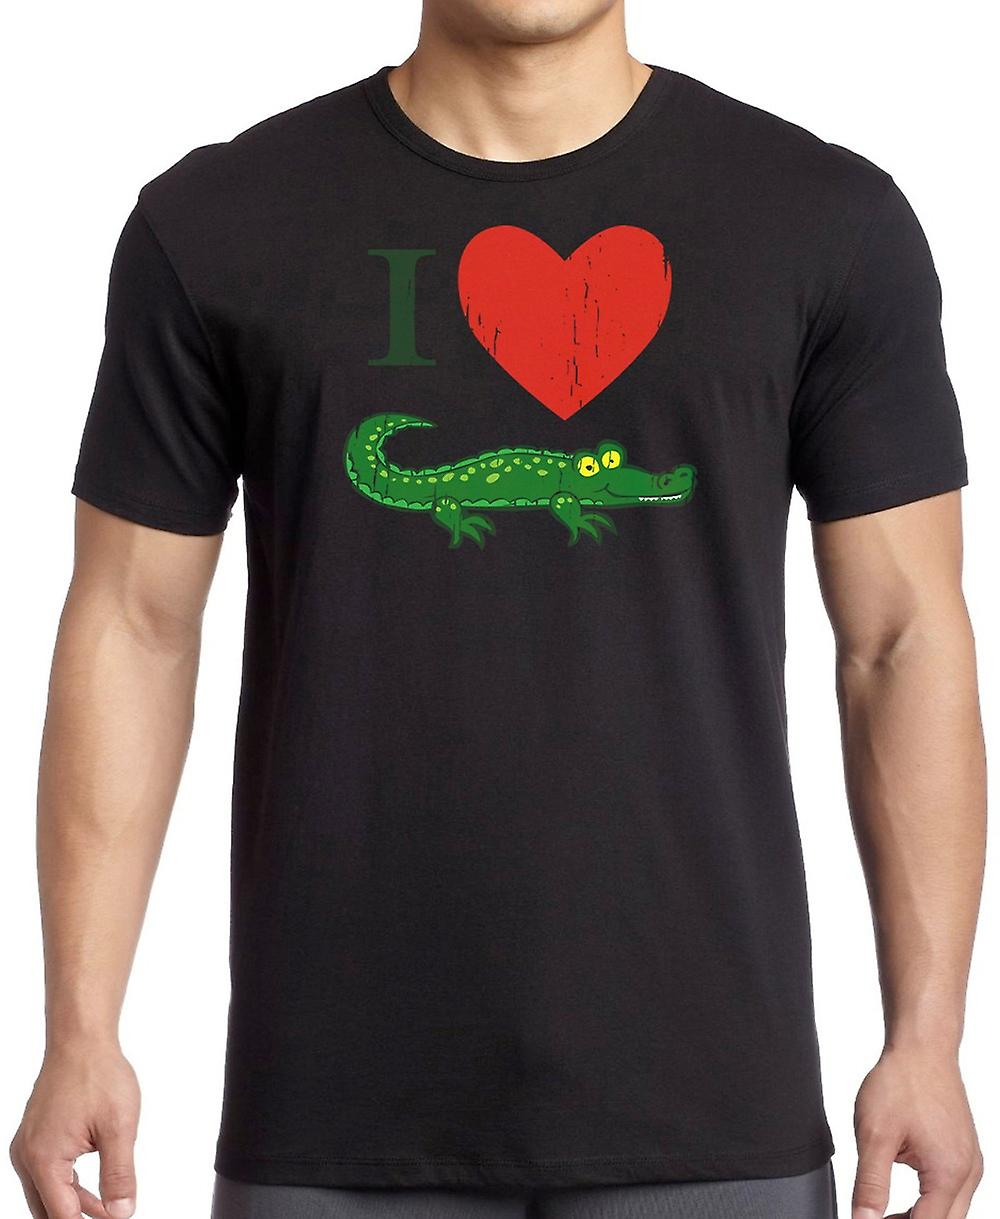 Je aime Crocodiles - Cool Kids T-shirt